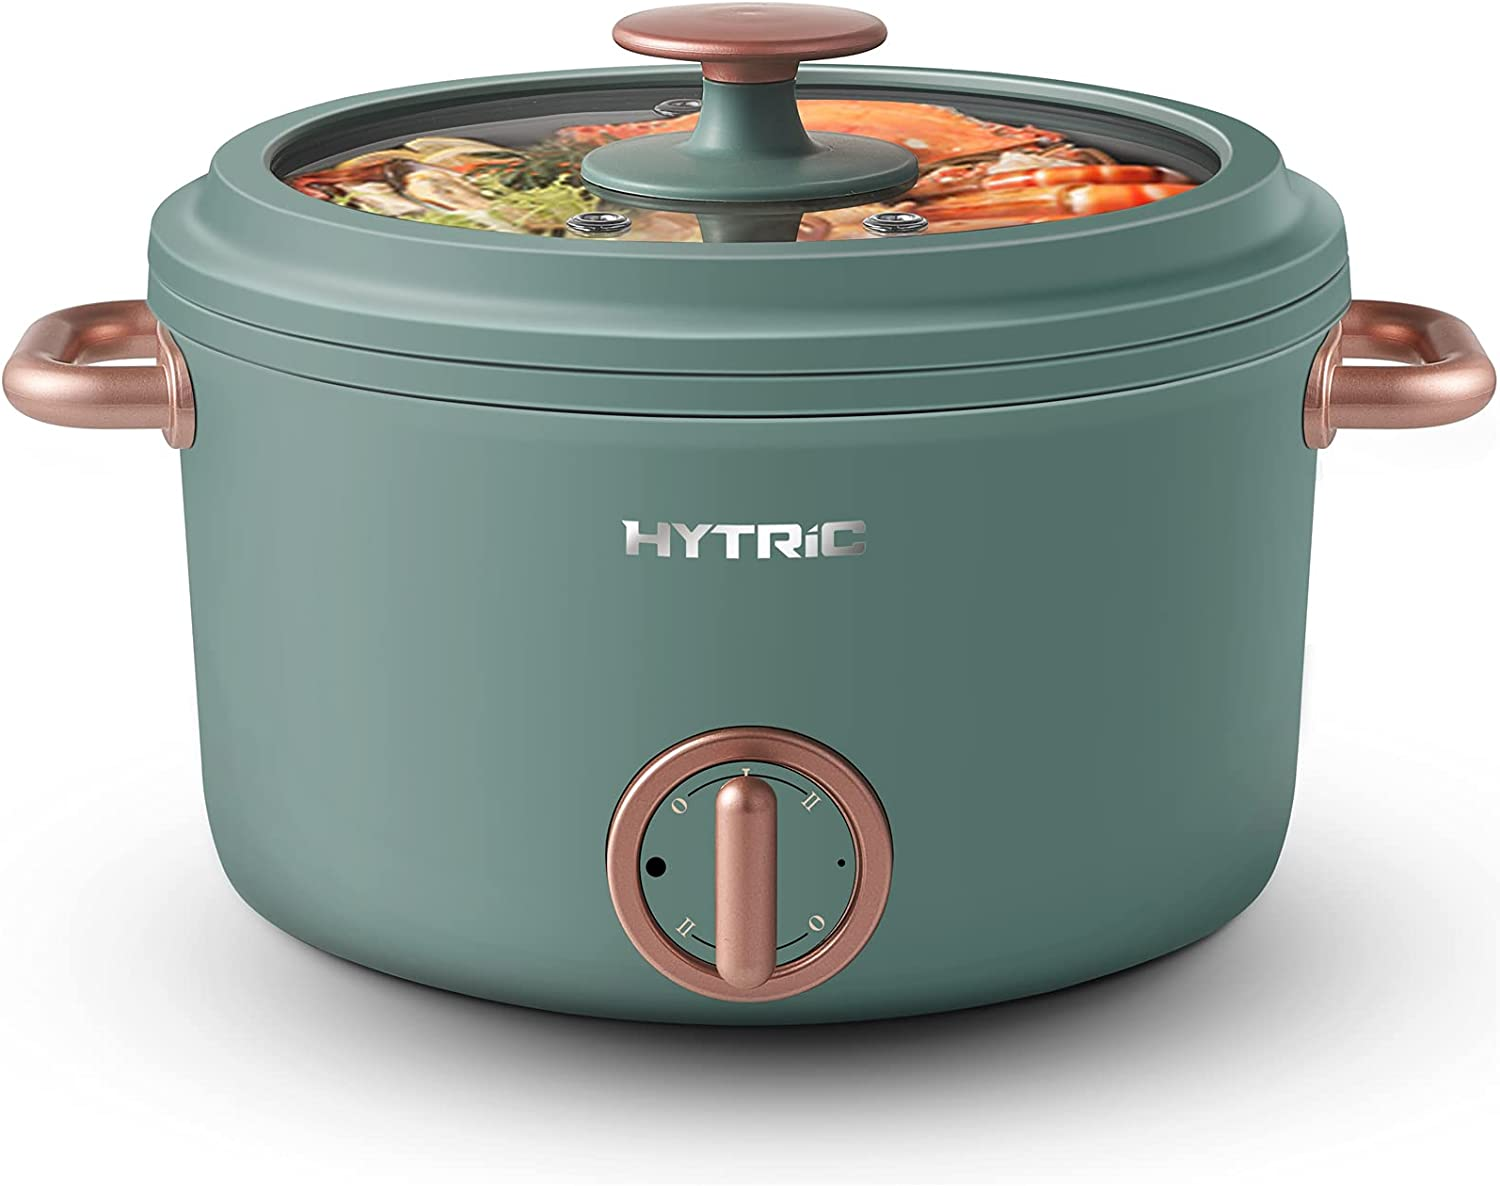 Hytric Electric Hot Pot, 2.5L Portable Electric Skillet with Nonstick Coating, Dual Power Control Multi-Function Electric Cooker for Stir Fry, Steak, Noodles, Ramen Cooker for Dorm and Office